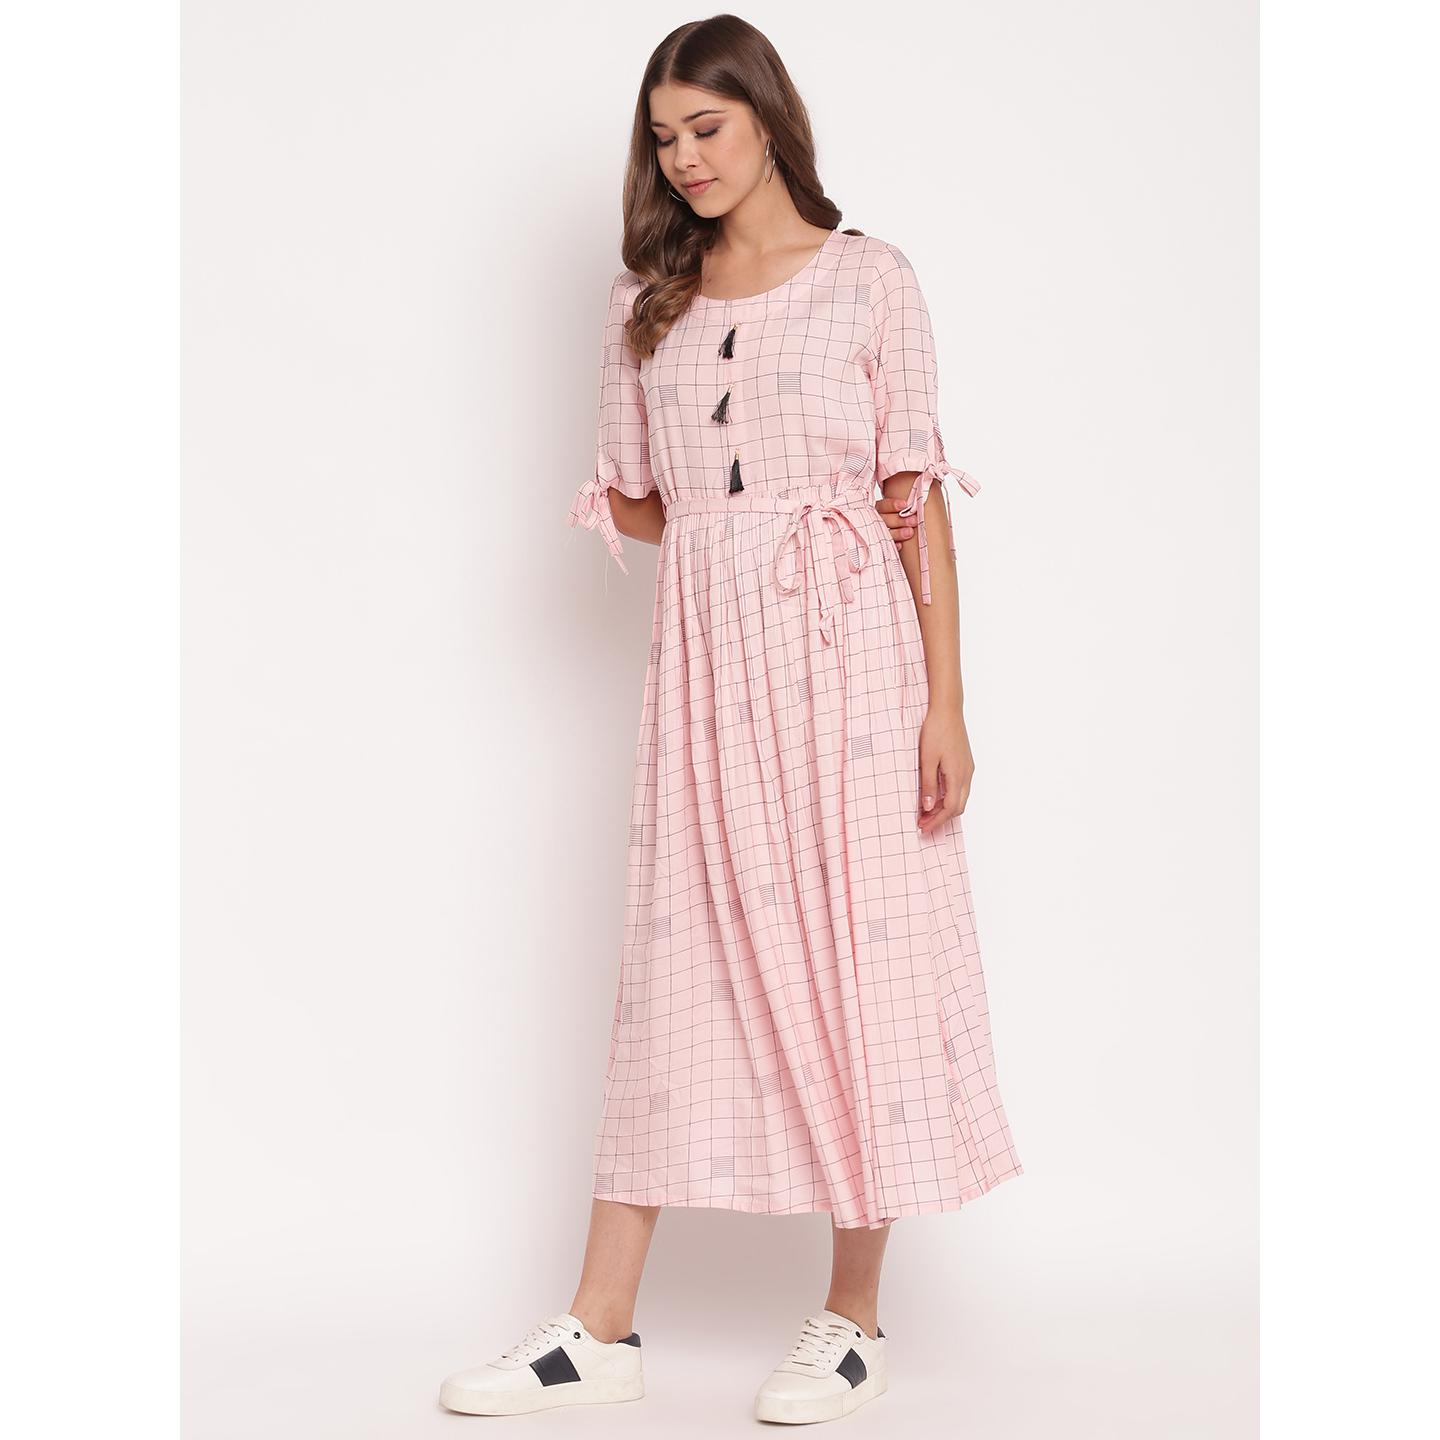 Elegant Pink Colored Party Wear Check Print Ankle Length Rayon Kurti